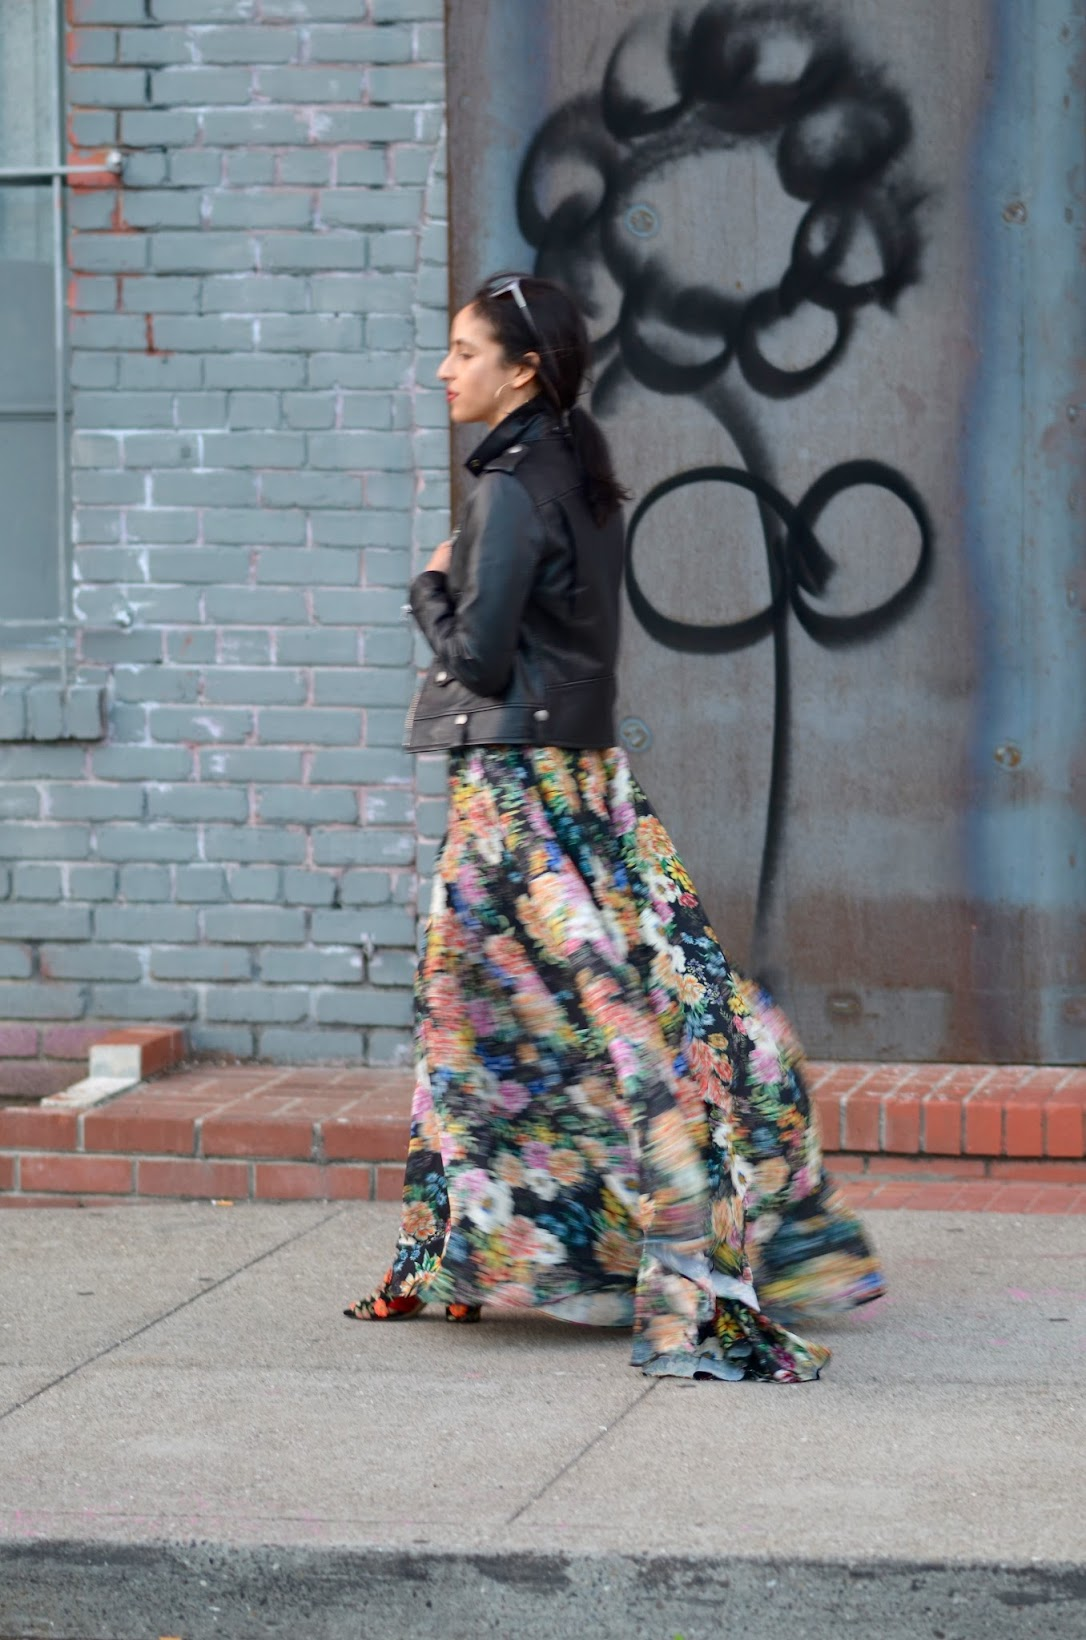 street style blogger, Yumi Kim Garden floral maxi dress, garden grown maxi dresss, Anthropologie Garden Grown maxi dress, Janessa leone fedora, Aveda red lipstick, hoop earrings, latina fashion blogger, San Francisco chic style